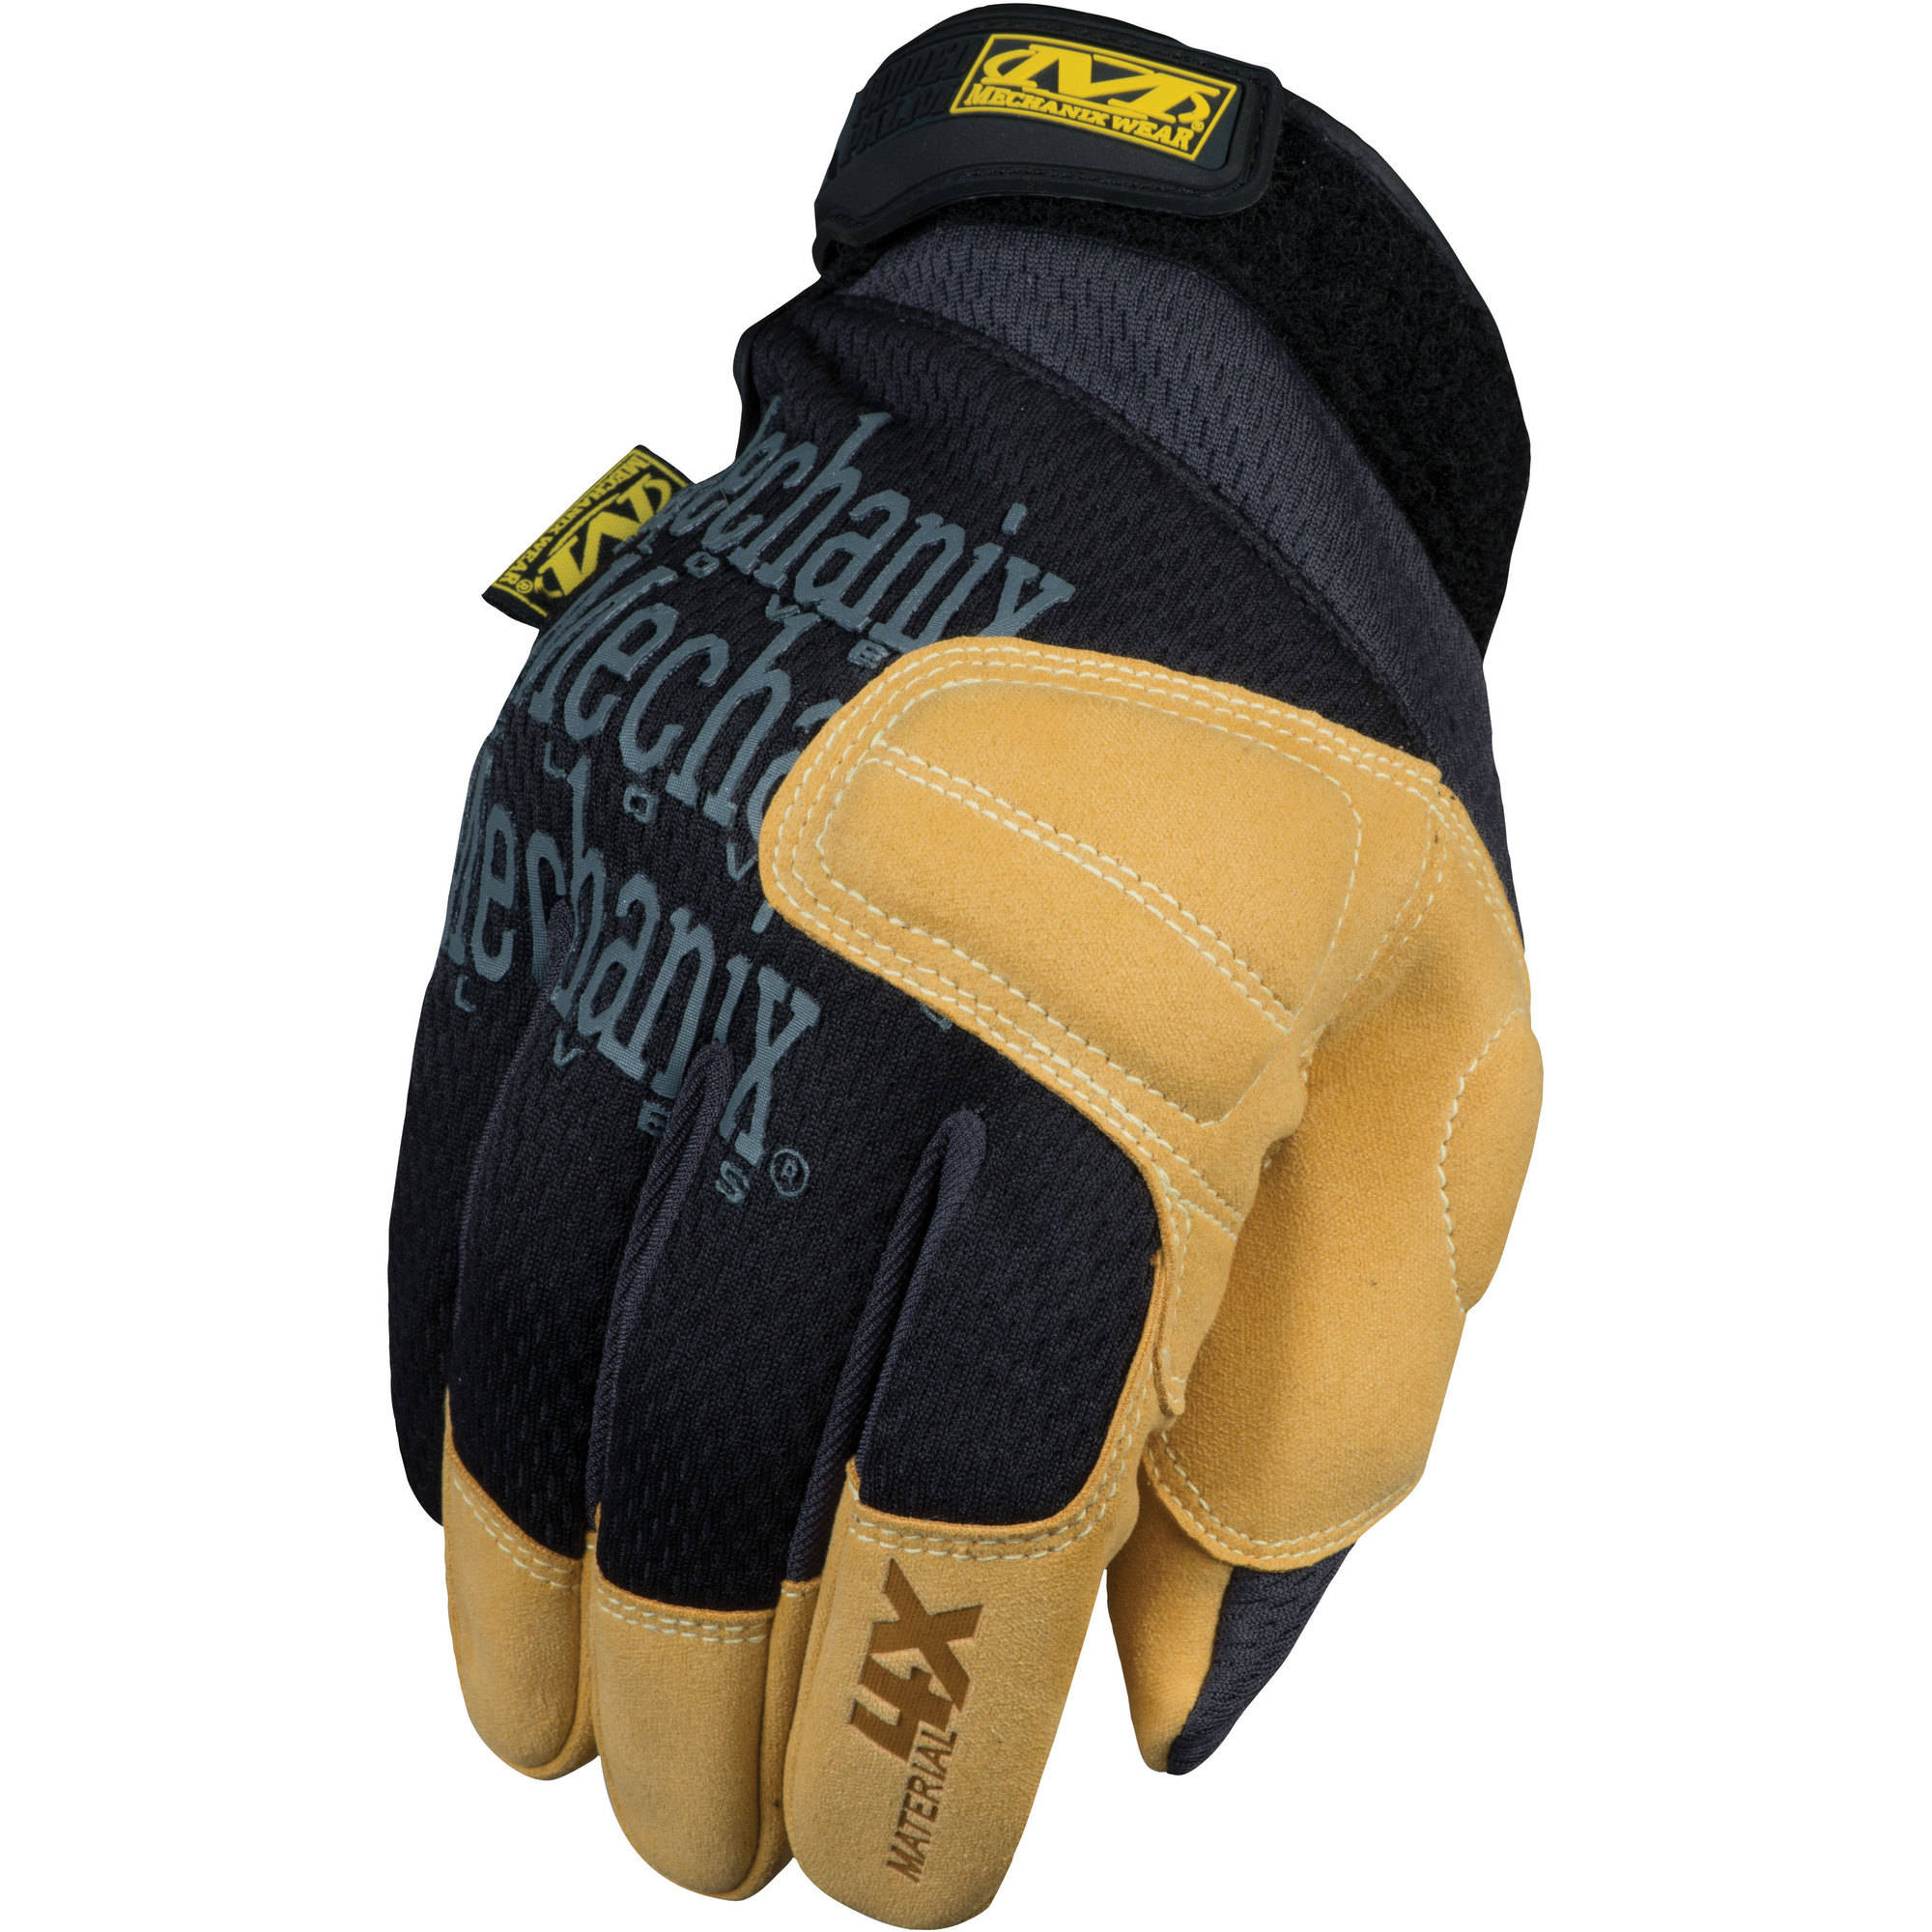 Mechanix Wear Material 4X Padded Palm Glove, Tan, X-Large